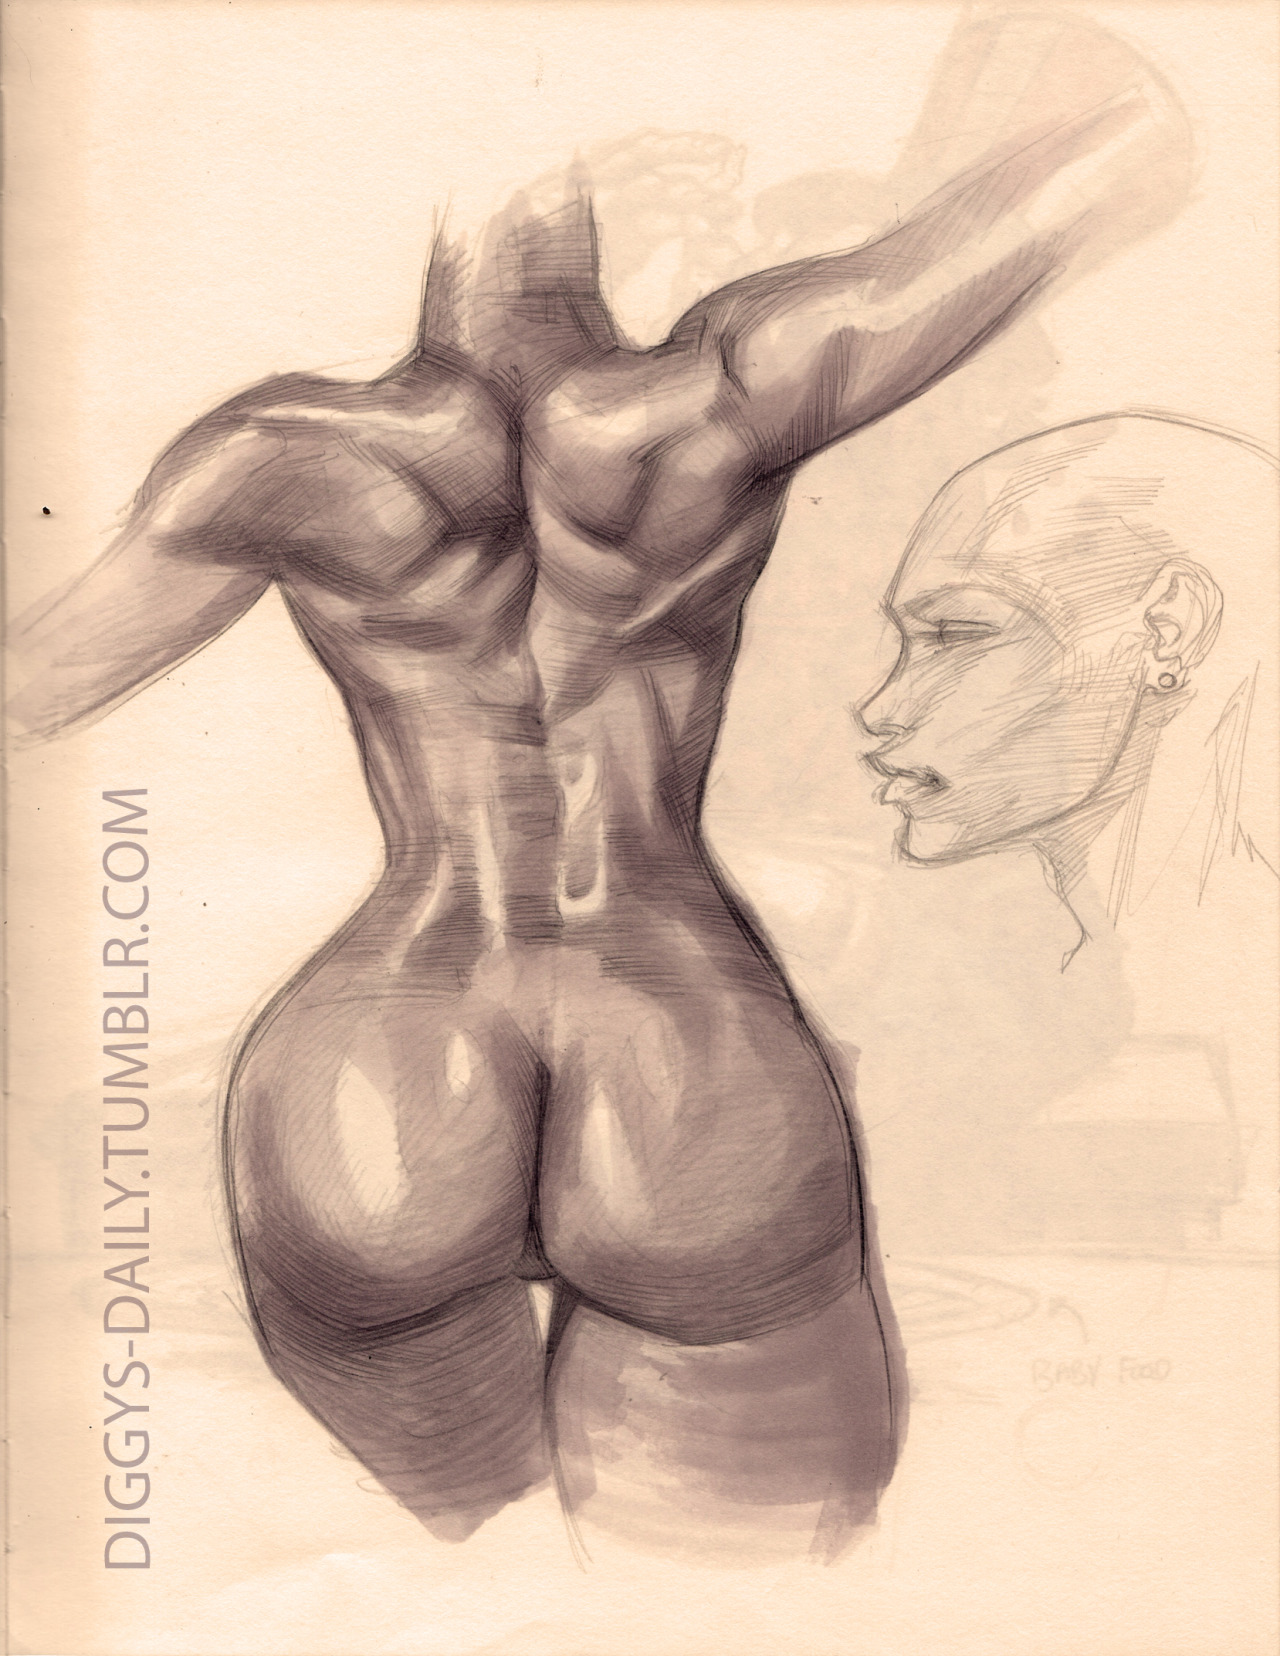 SKETCH  OF THE DAY: FEMALE ANATOMY STUDY 2011